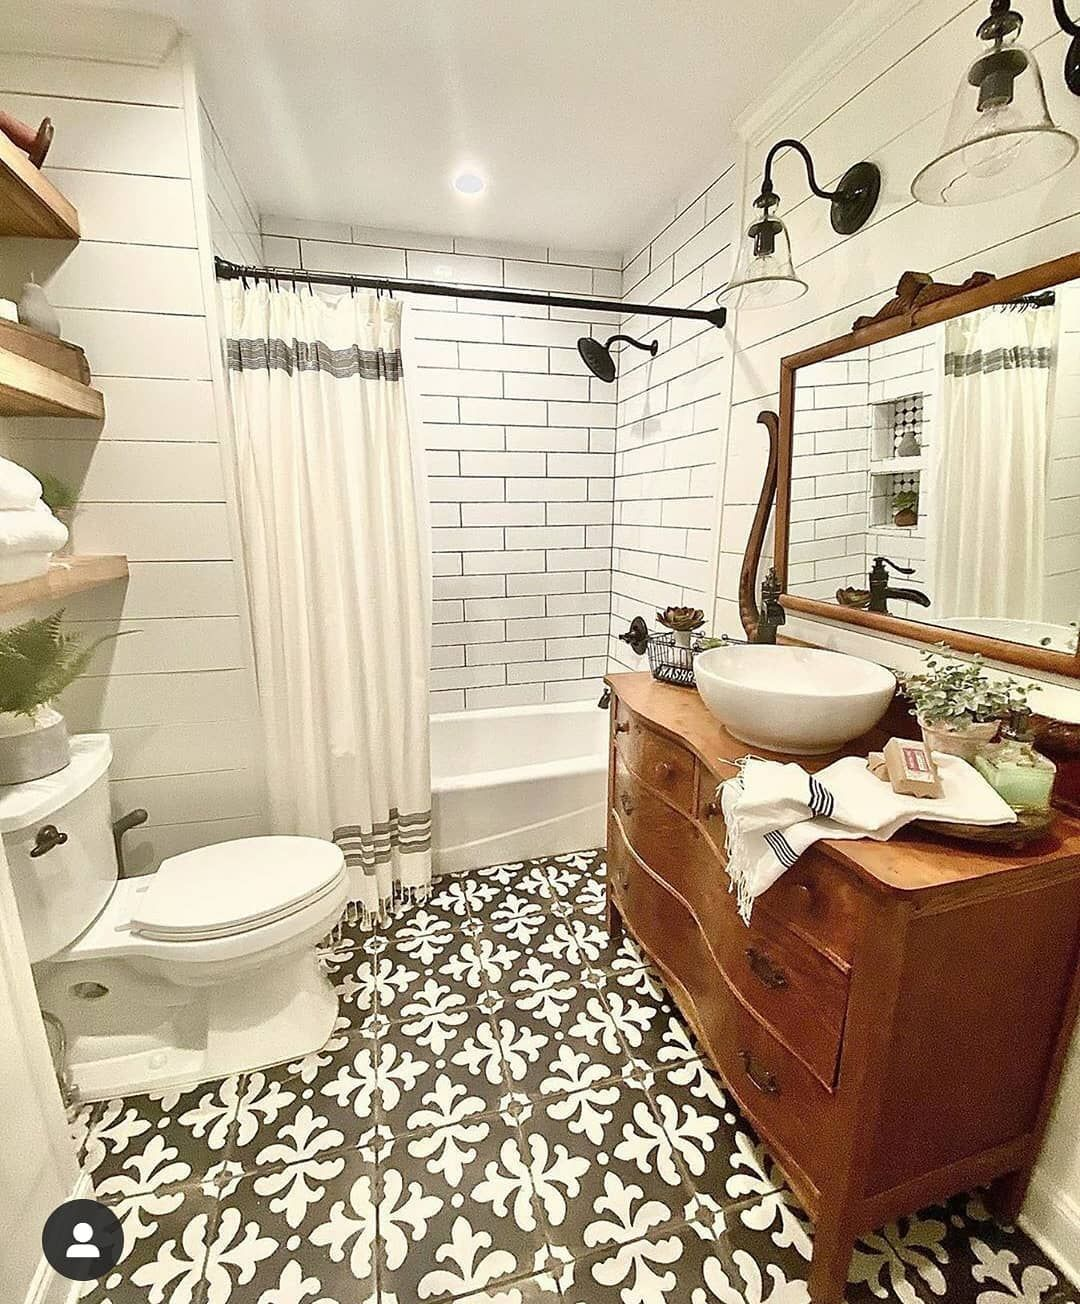 Farmhouse Stylebook On Instagram This Bathroom Has So Much Charm From Our Reclaimed H In 2020 Farmhouse Bathroom Accessories Farmhouse Bathroom Farmhouse Bathtubs